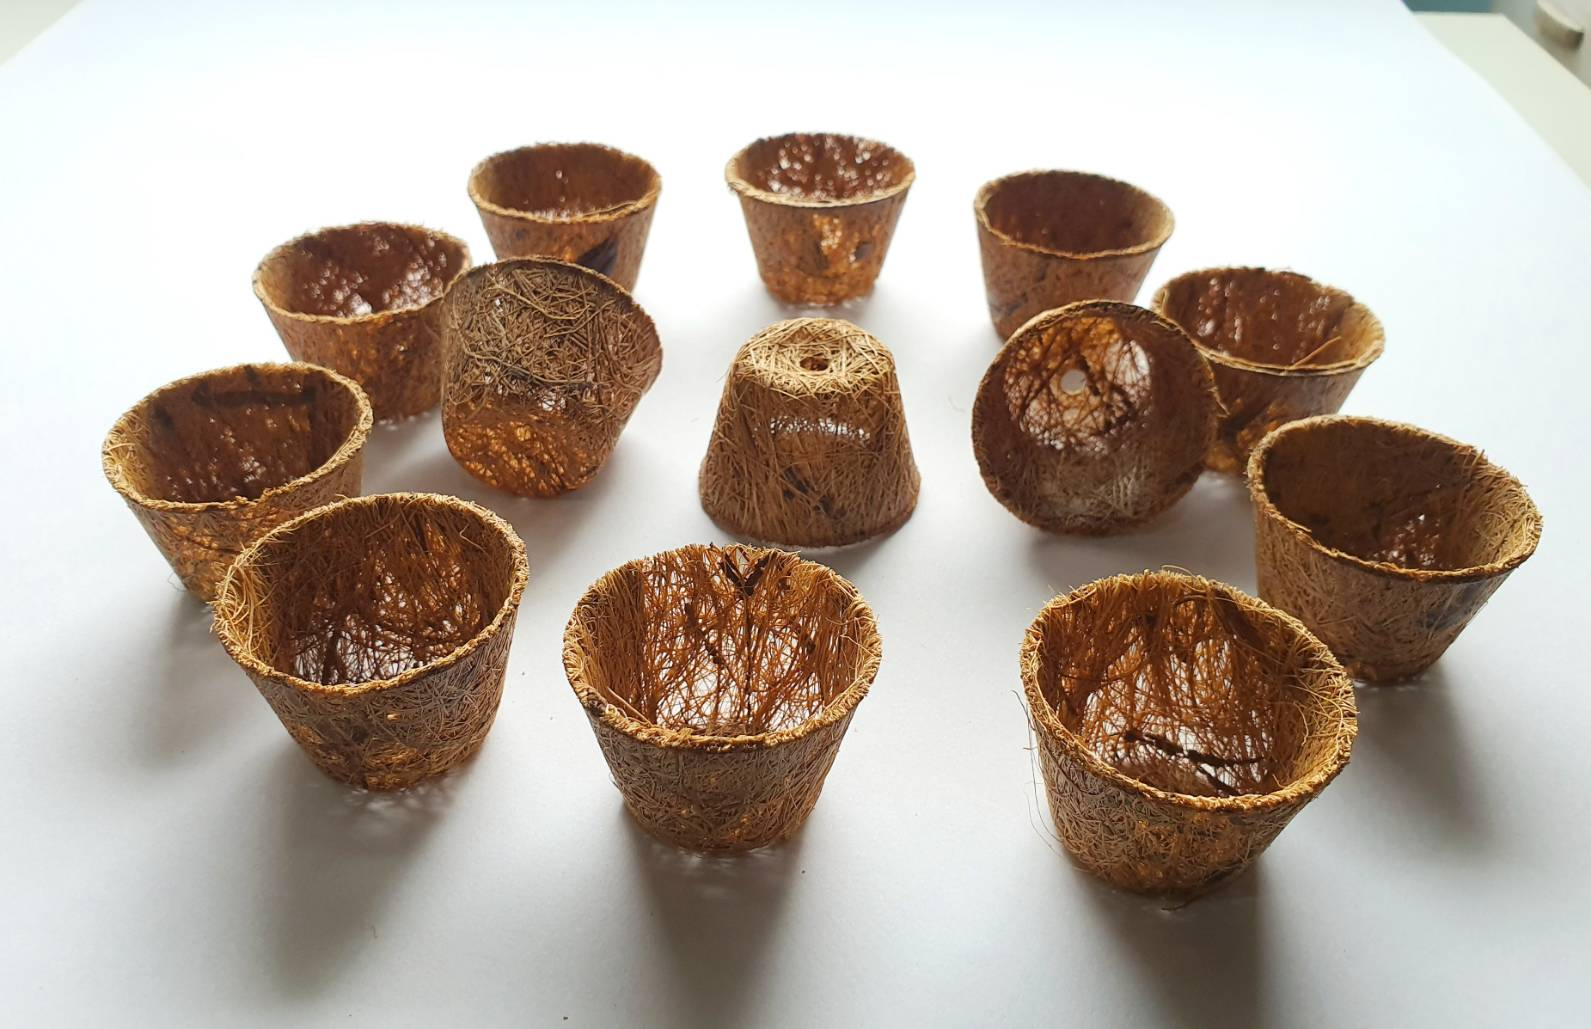 Hydroponics net pots (Natural & Biodegradable)